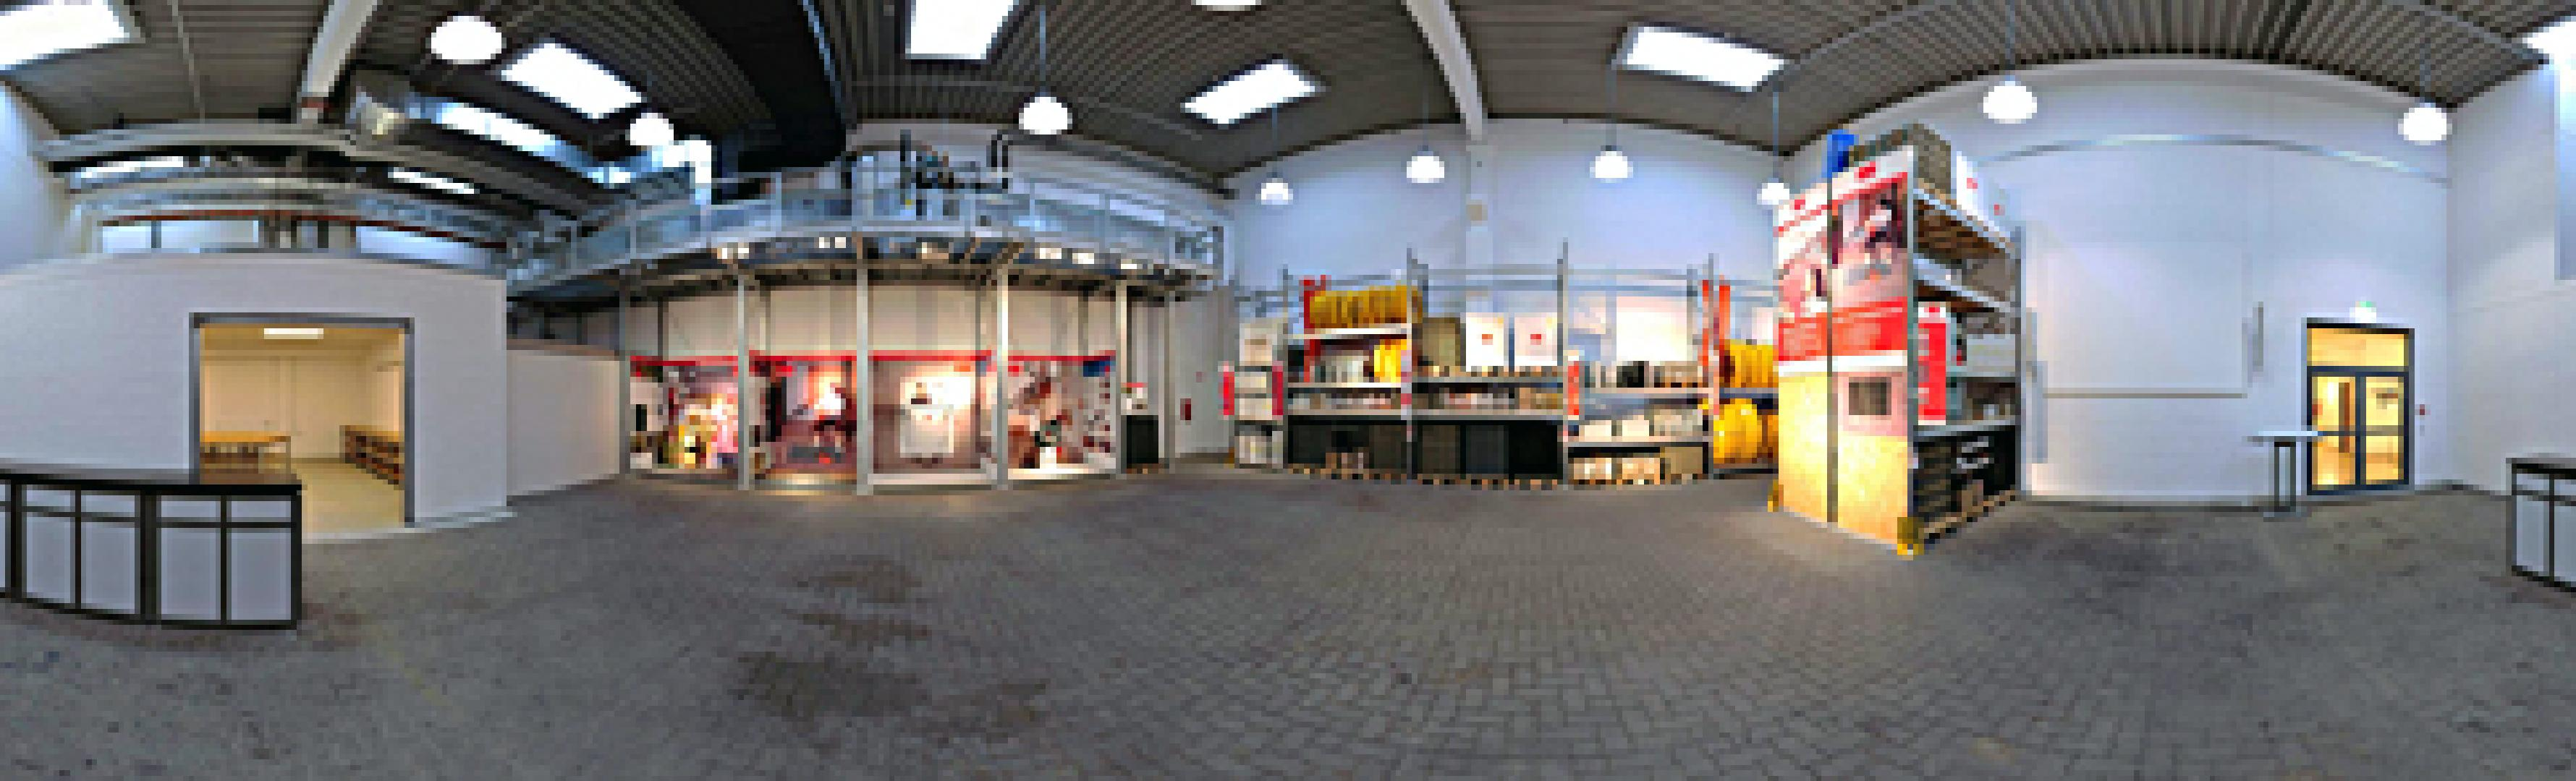 Bild 1 von Retail & Marketing Center